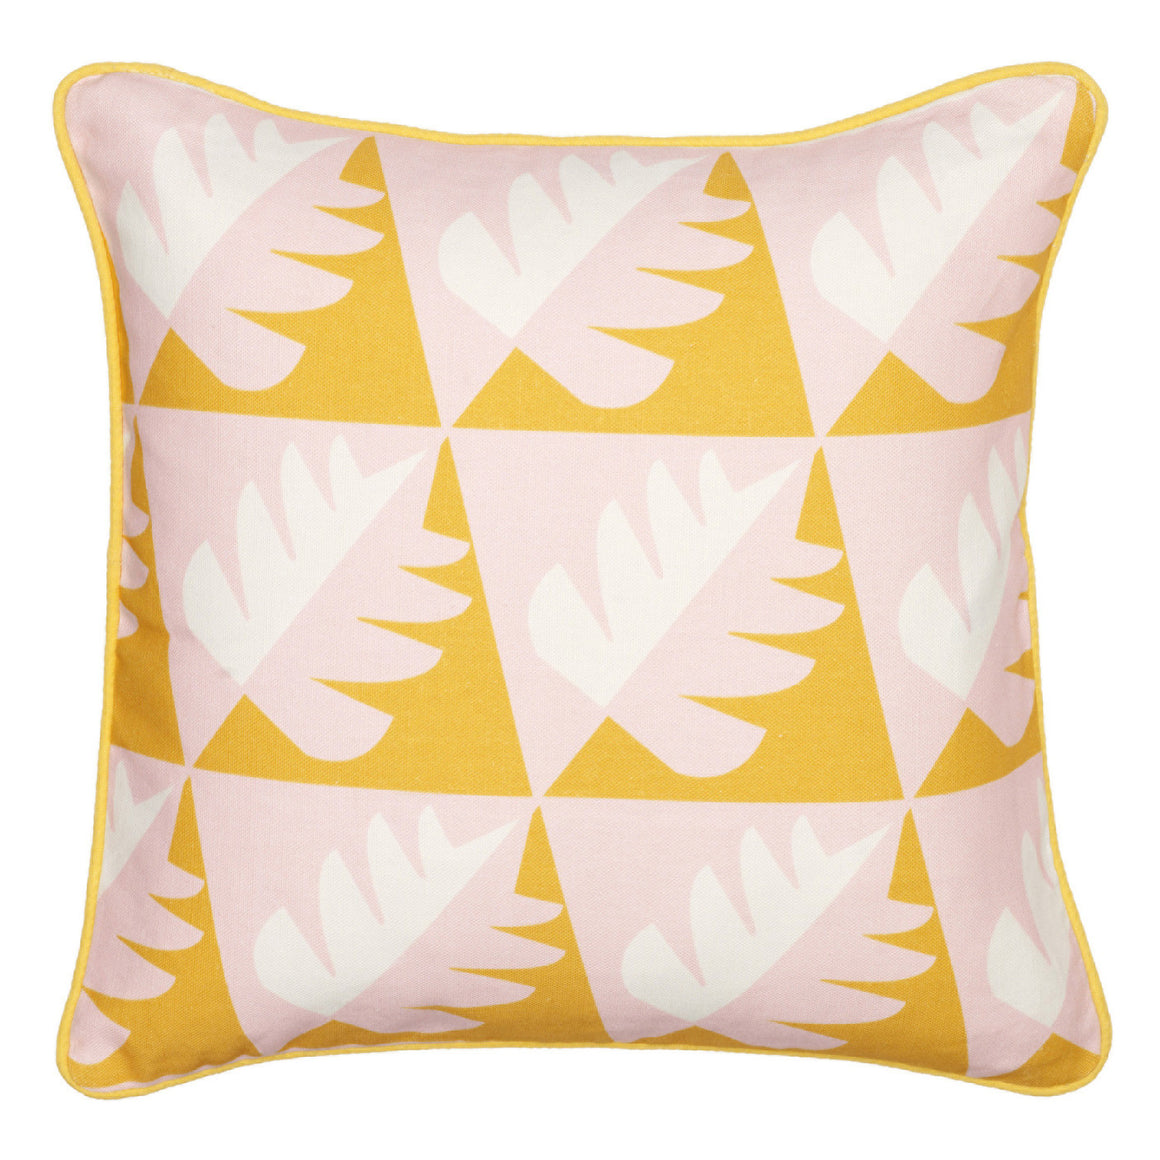 "Betty Geometric Tree Pattern Linen Decorative Throw Pillow in Saffron Yellow 45x45cm (18x18"")"